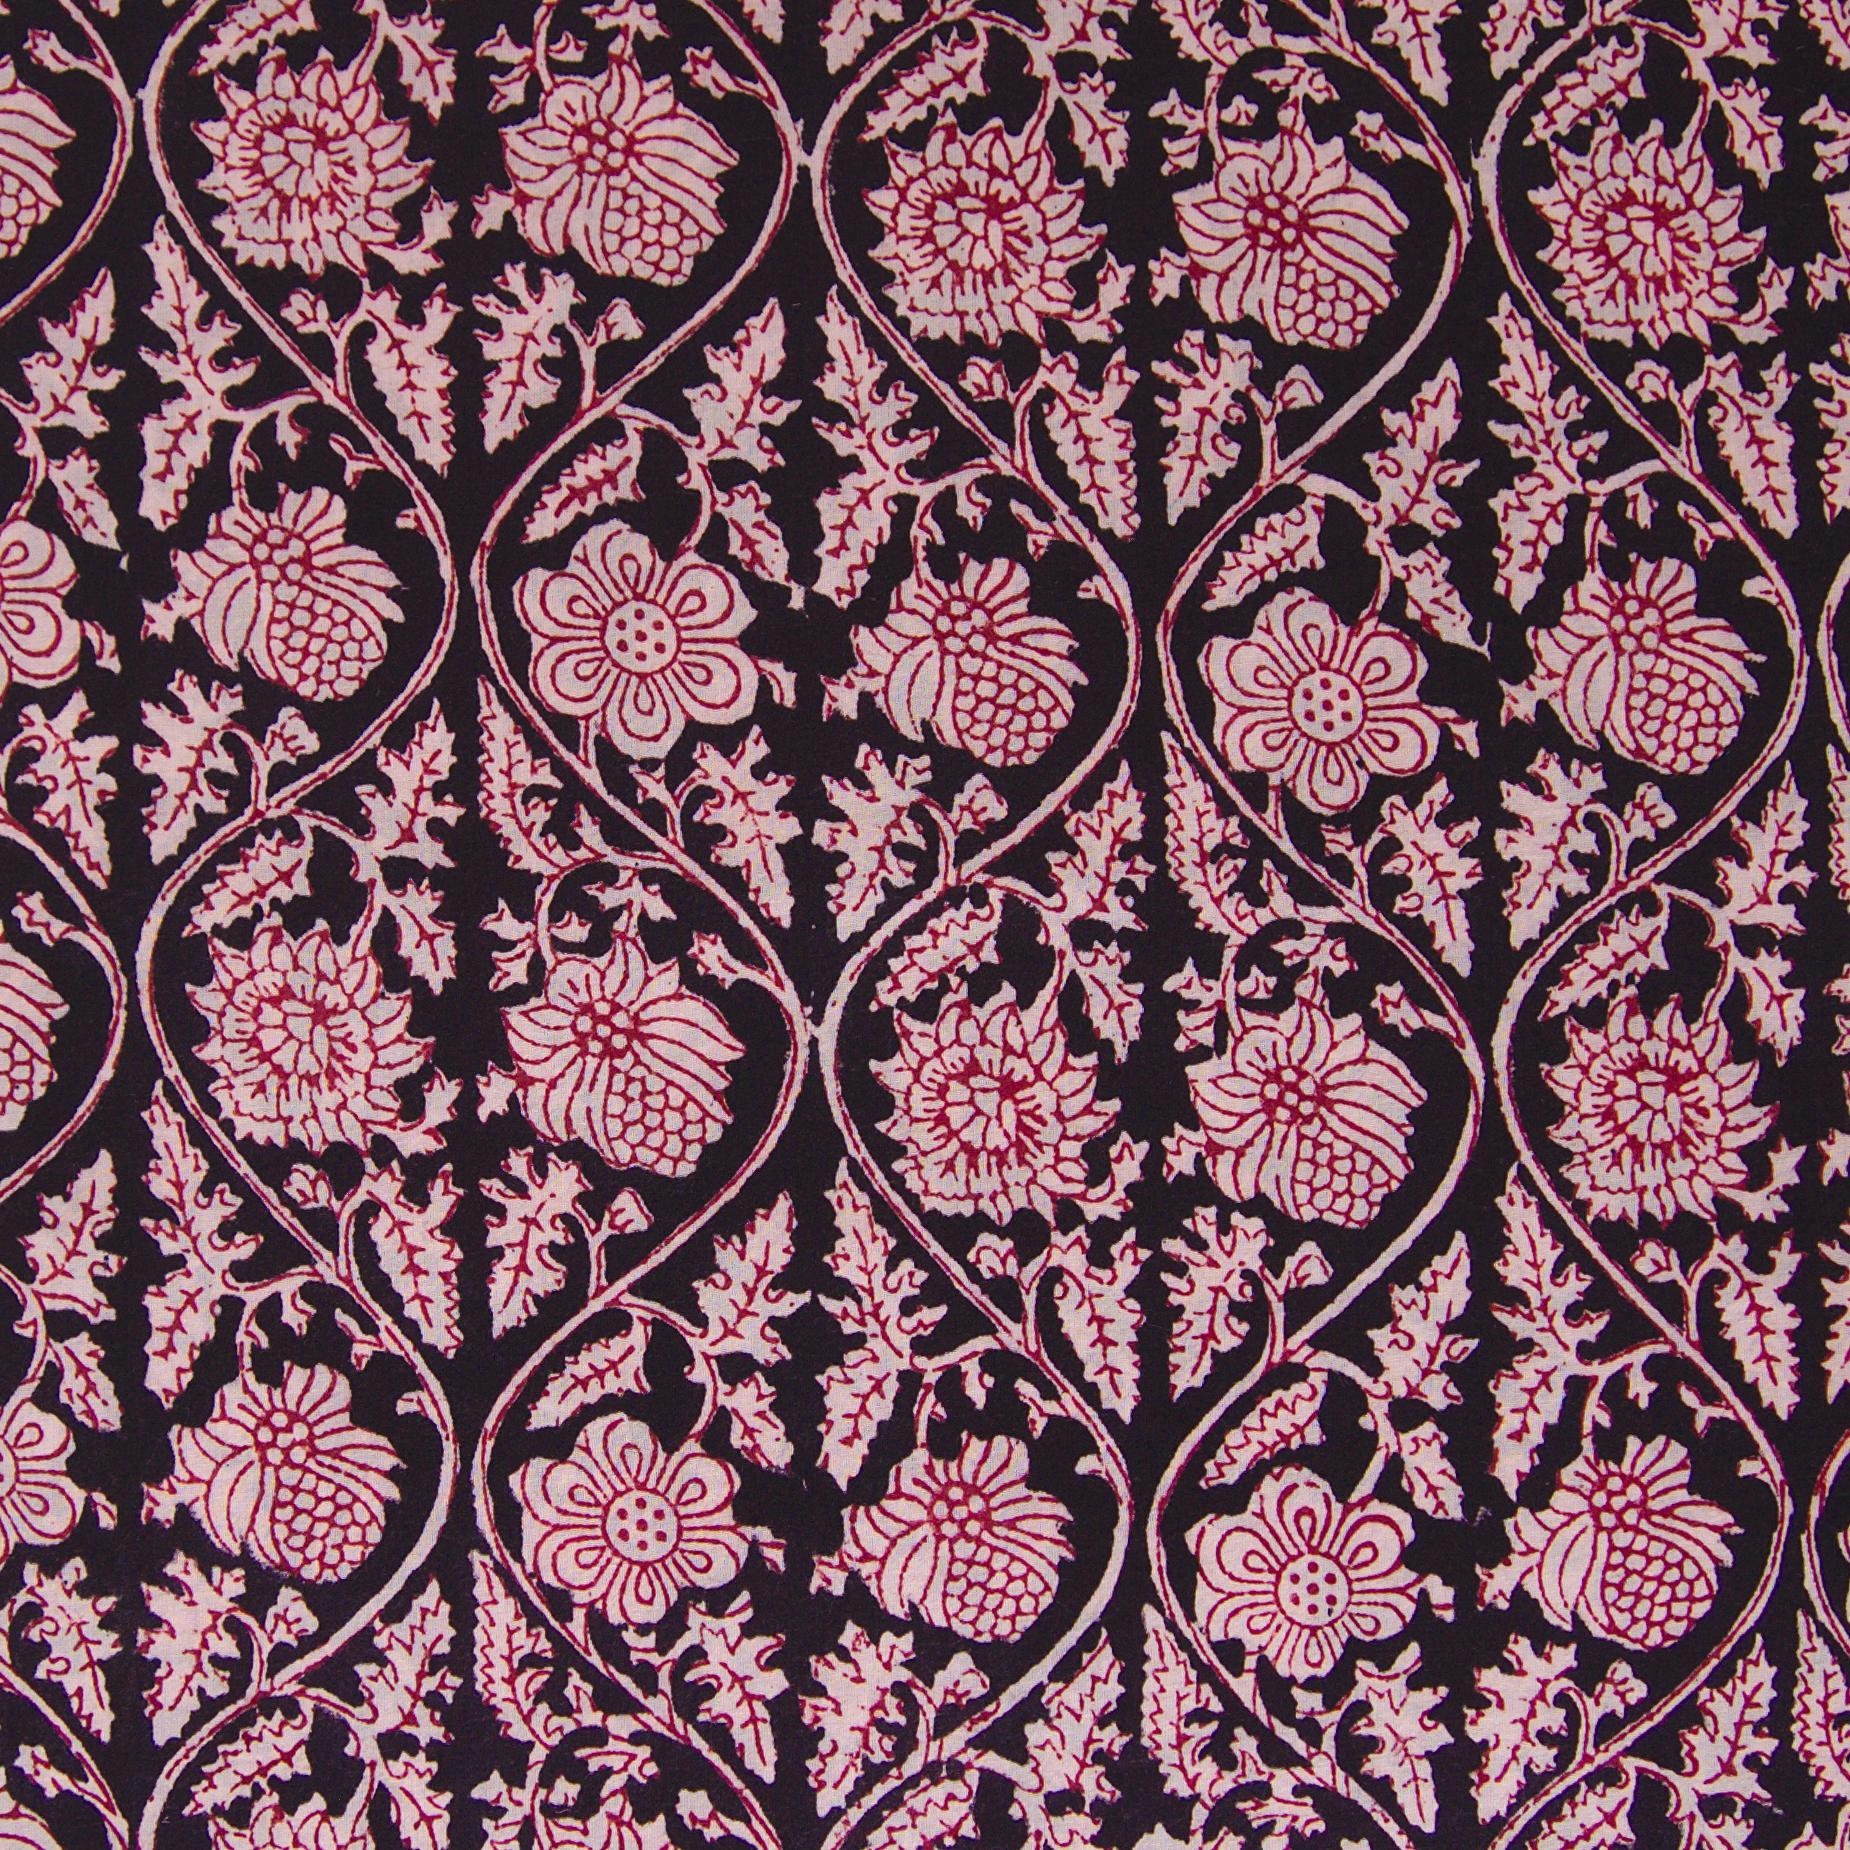 100% Block-Printed Cotton Fabric From India - Vinea Design - Iron Rust Black & Alizarin Red Dyes - Flat - Live